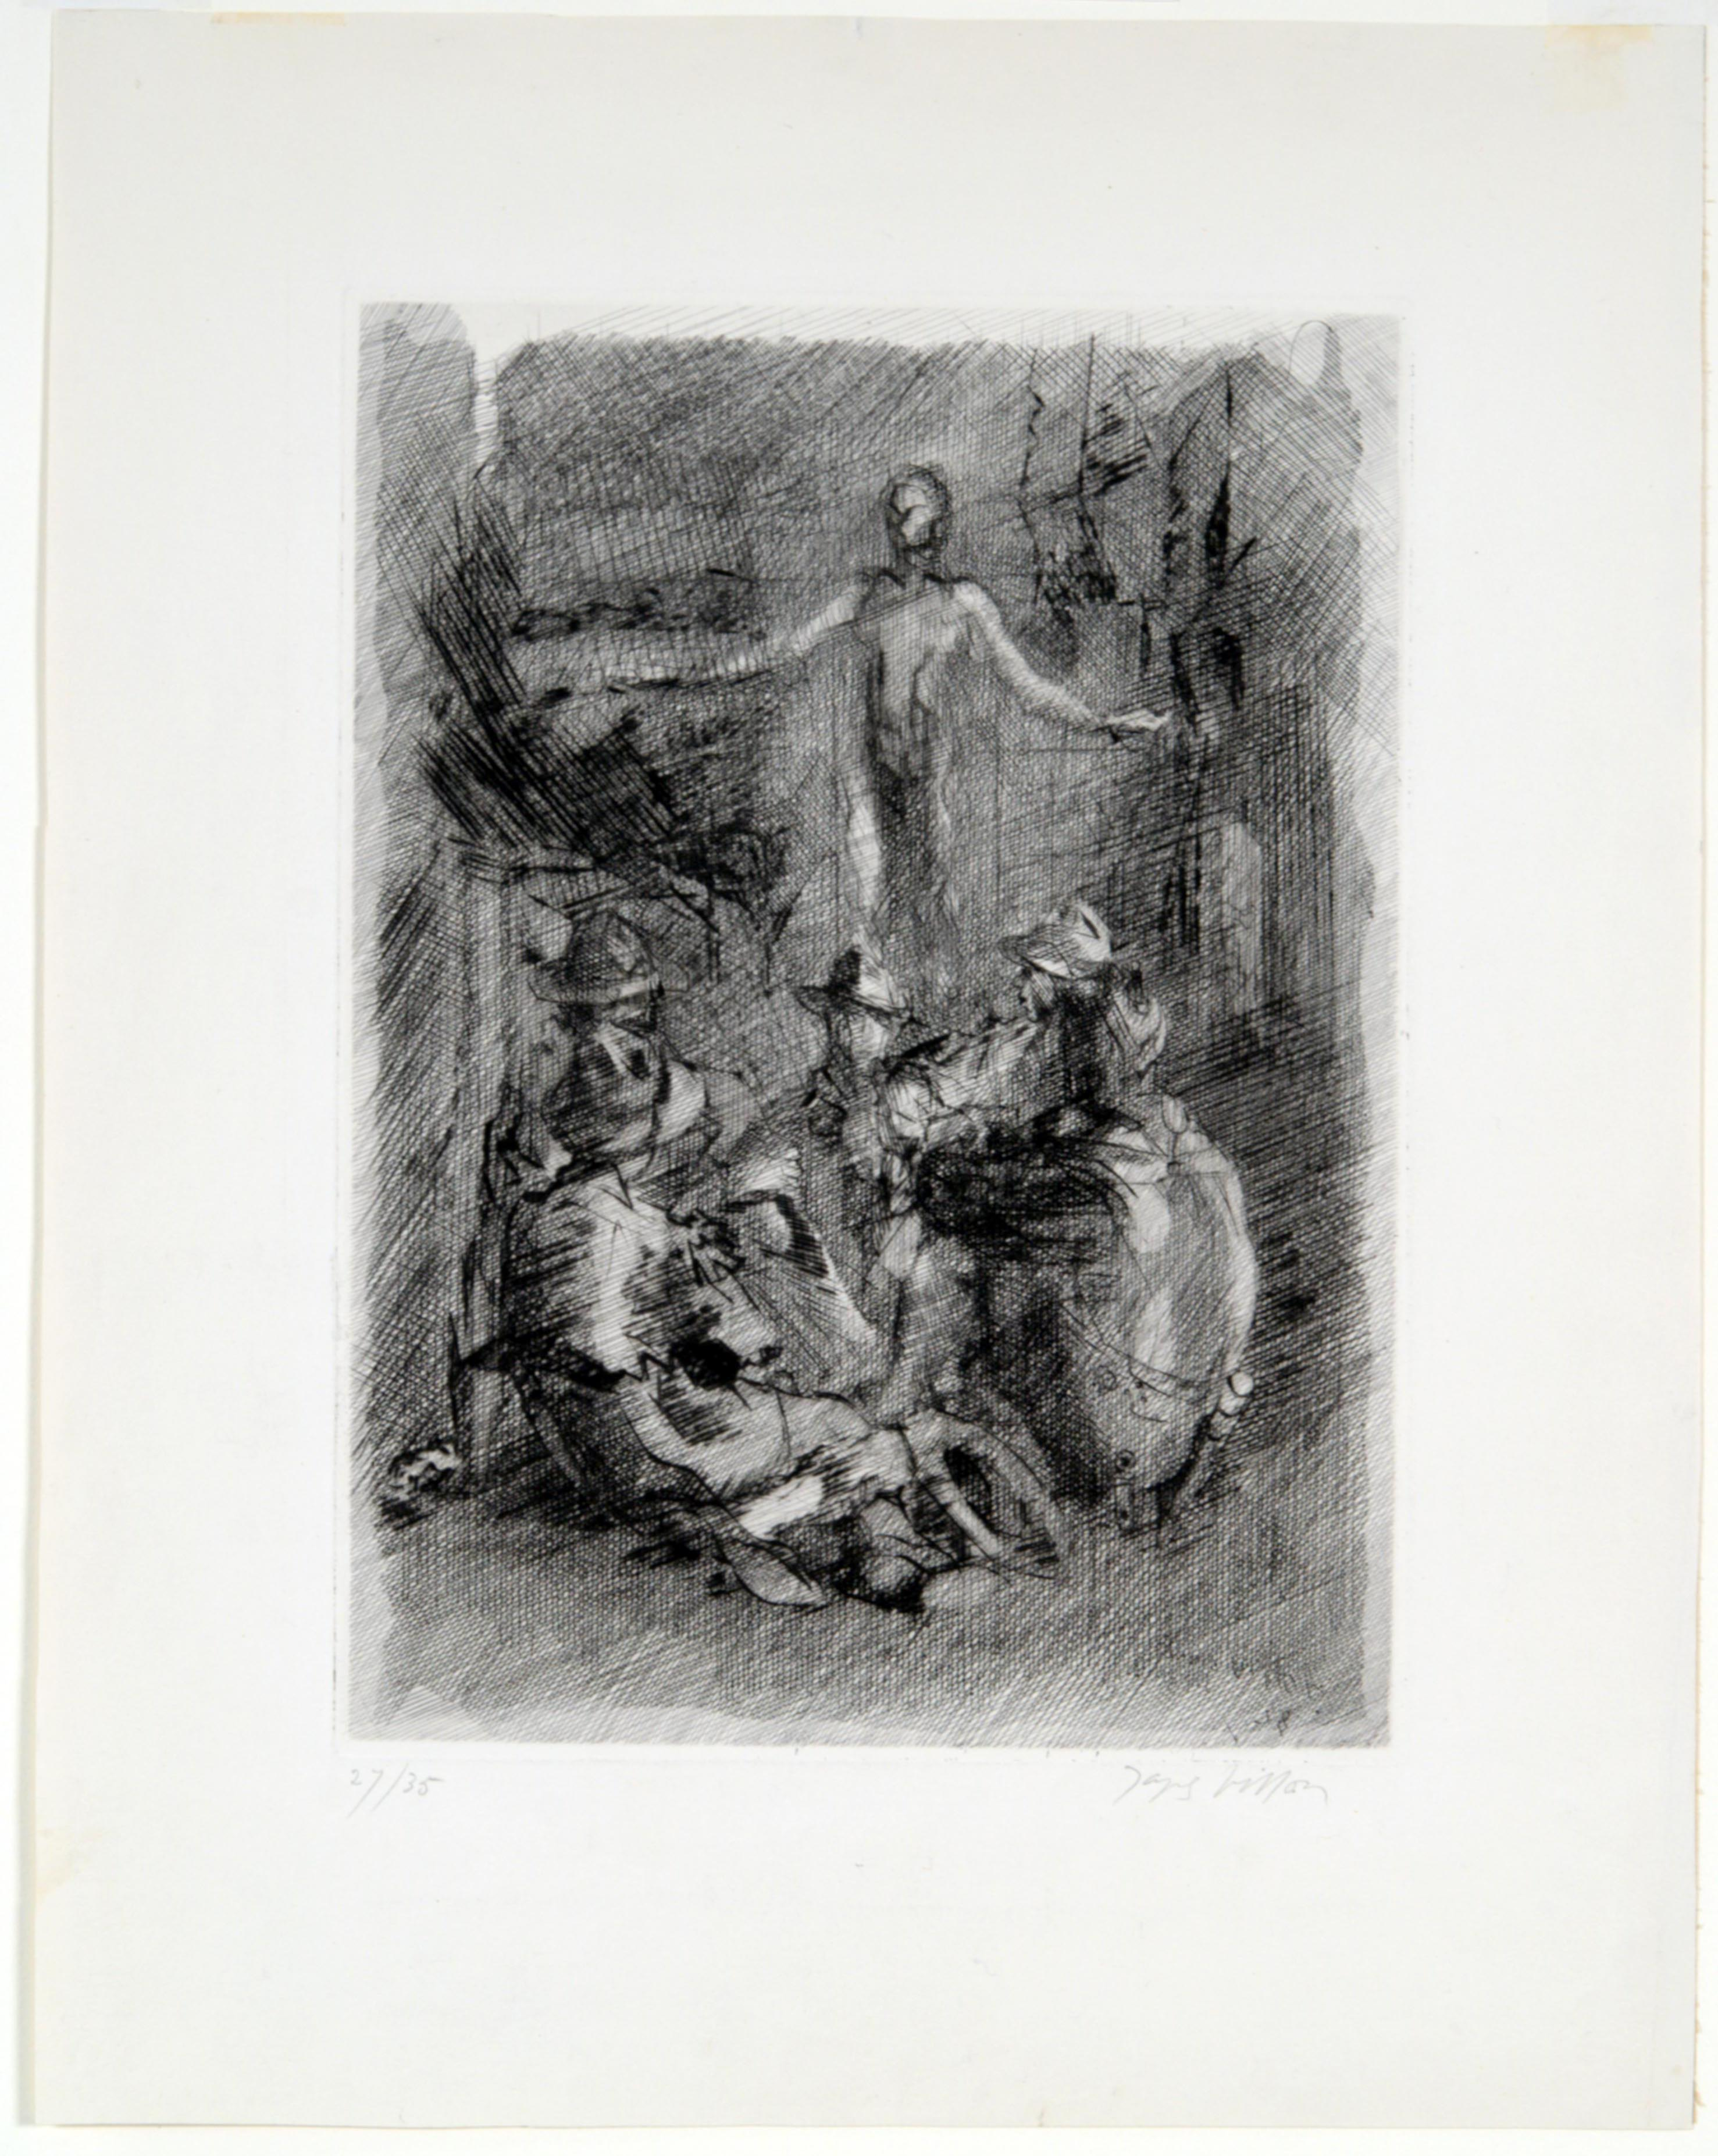 Jacques Villon, The Call of Life (The Boys), 1938